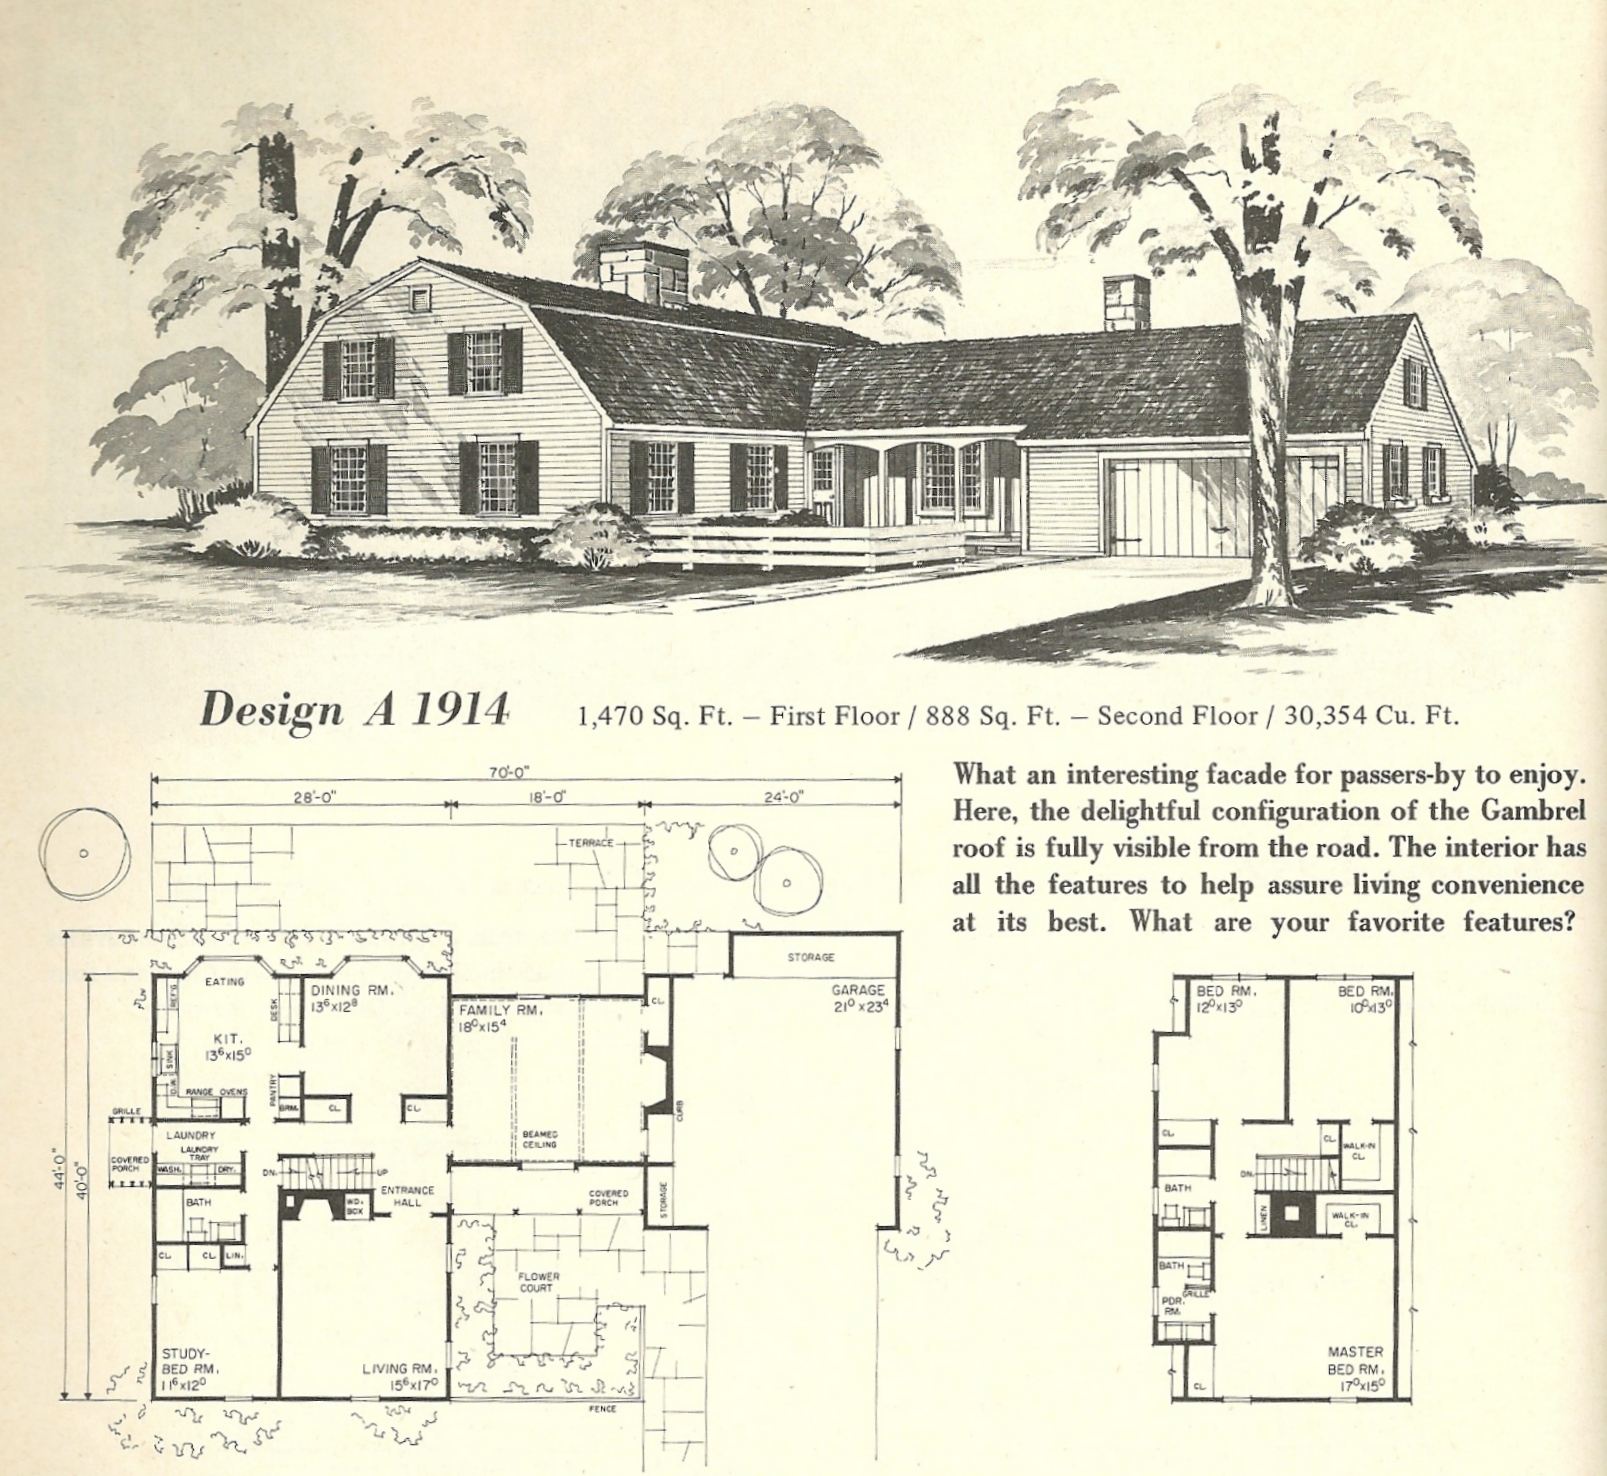 Vintage Home Plans Gambrel 1914 | Antique Alter Ego